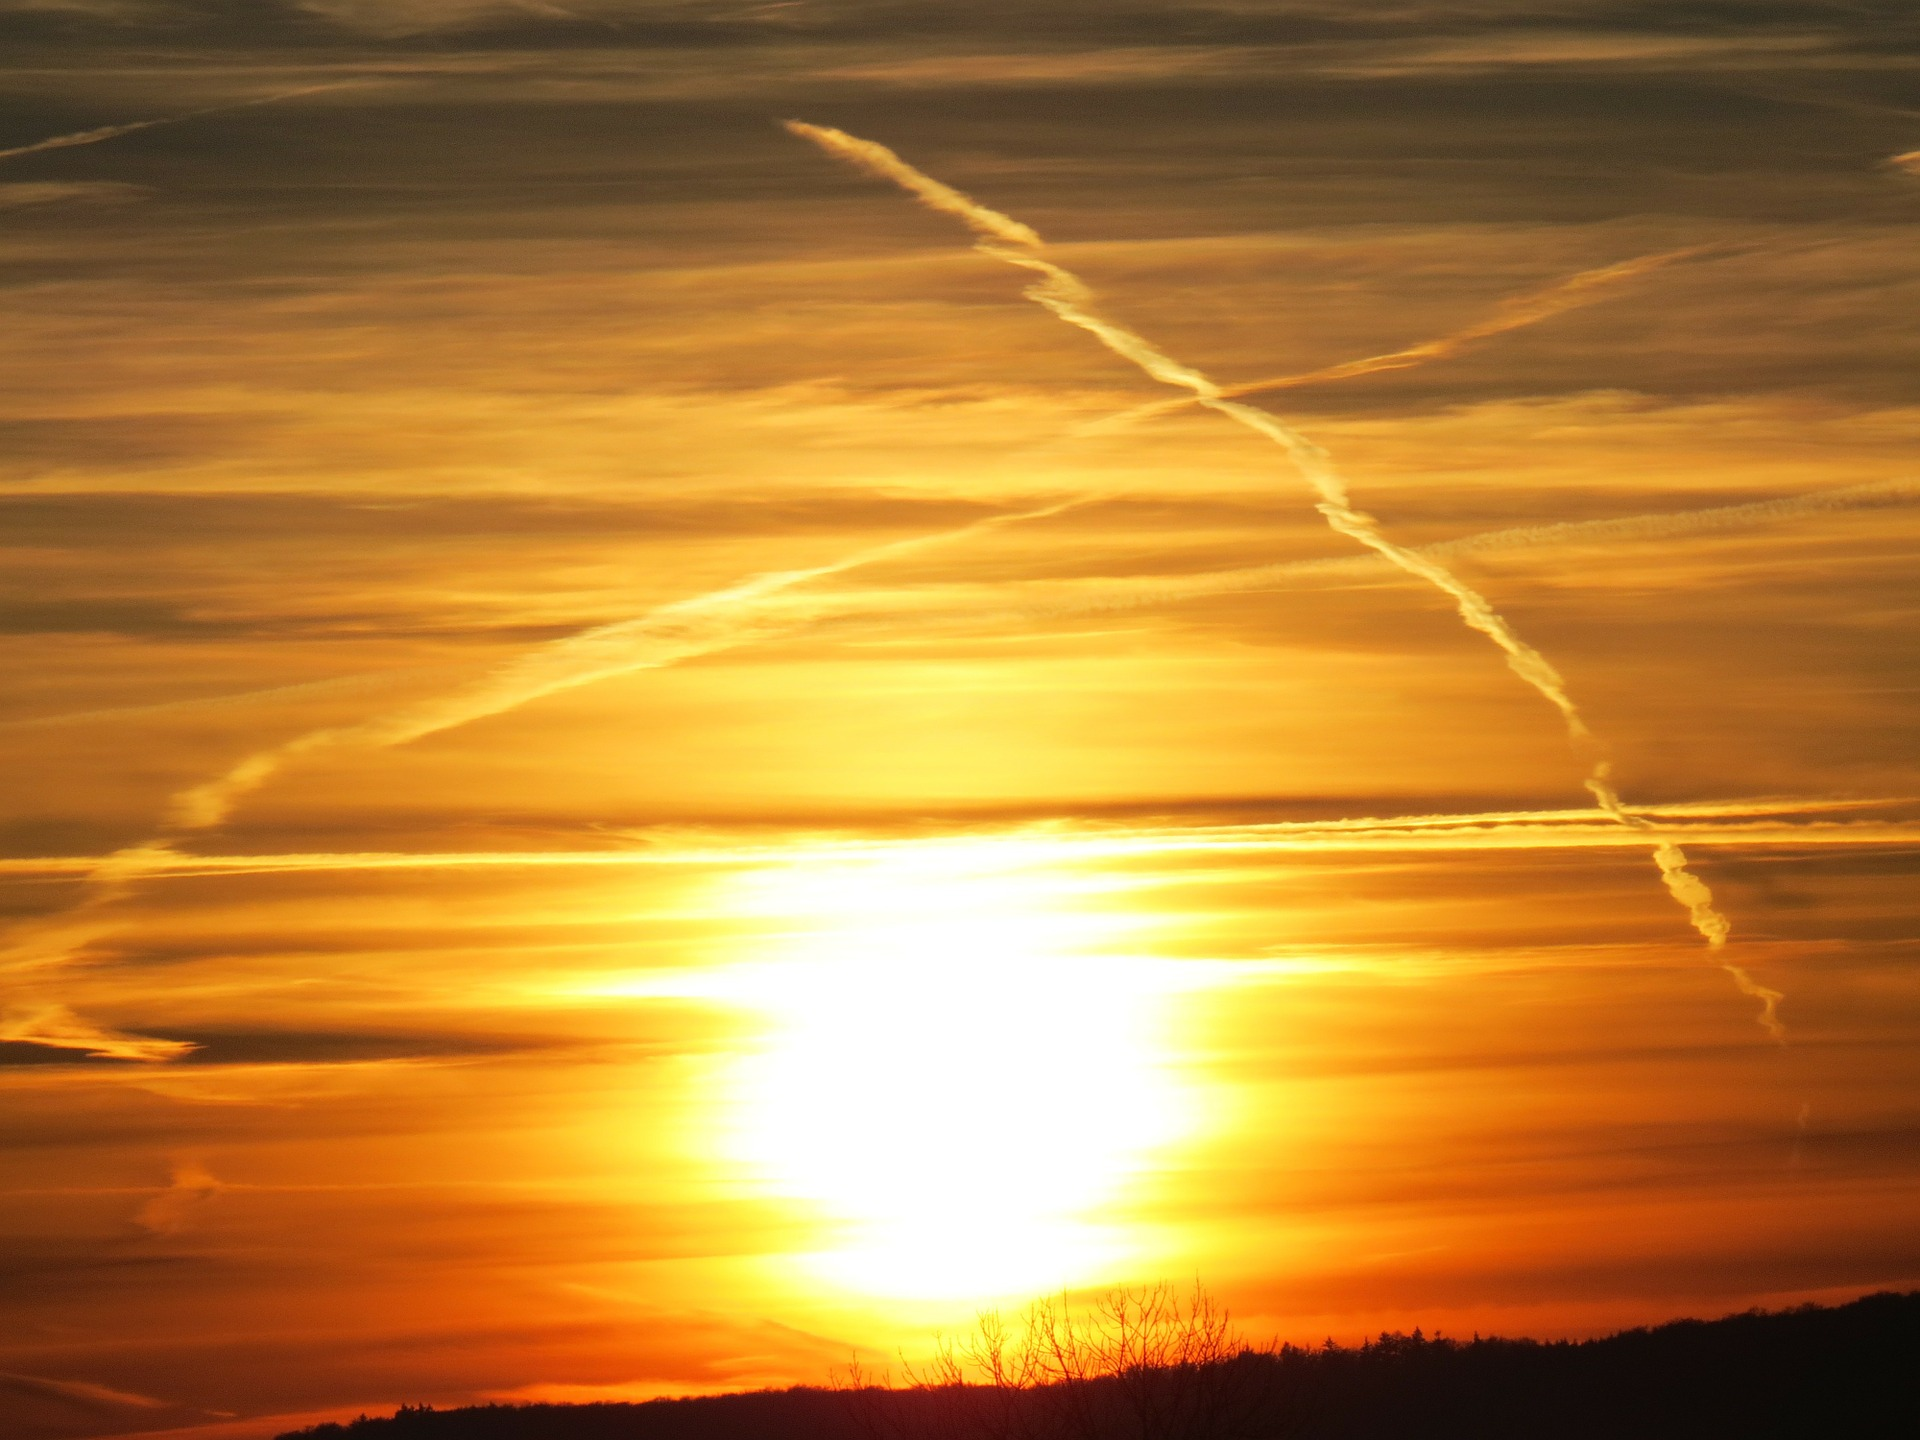 Airplane contrails flank a setting Sun. Credit: Hans/pixabay